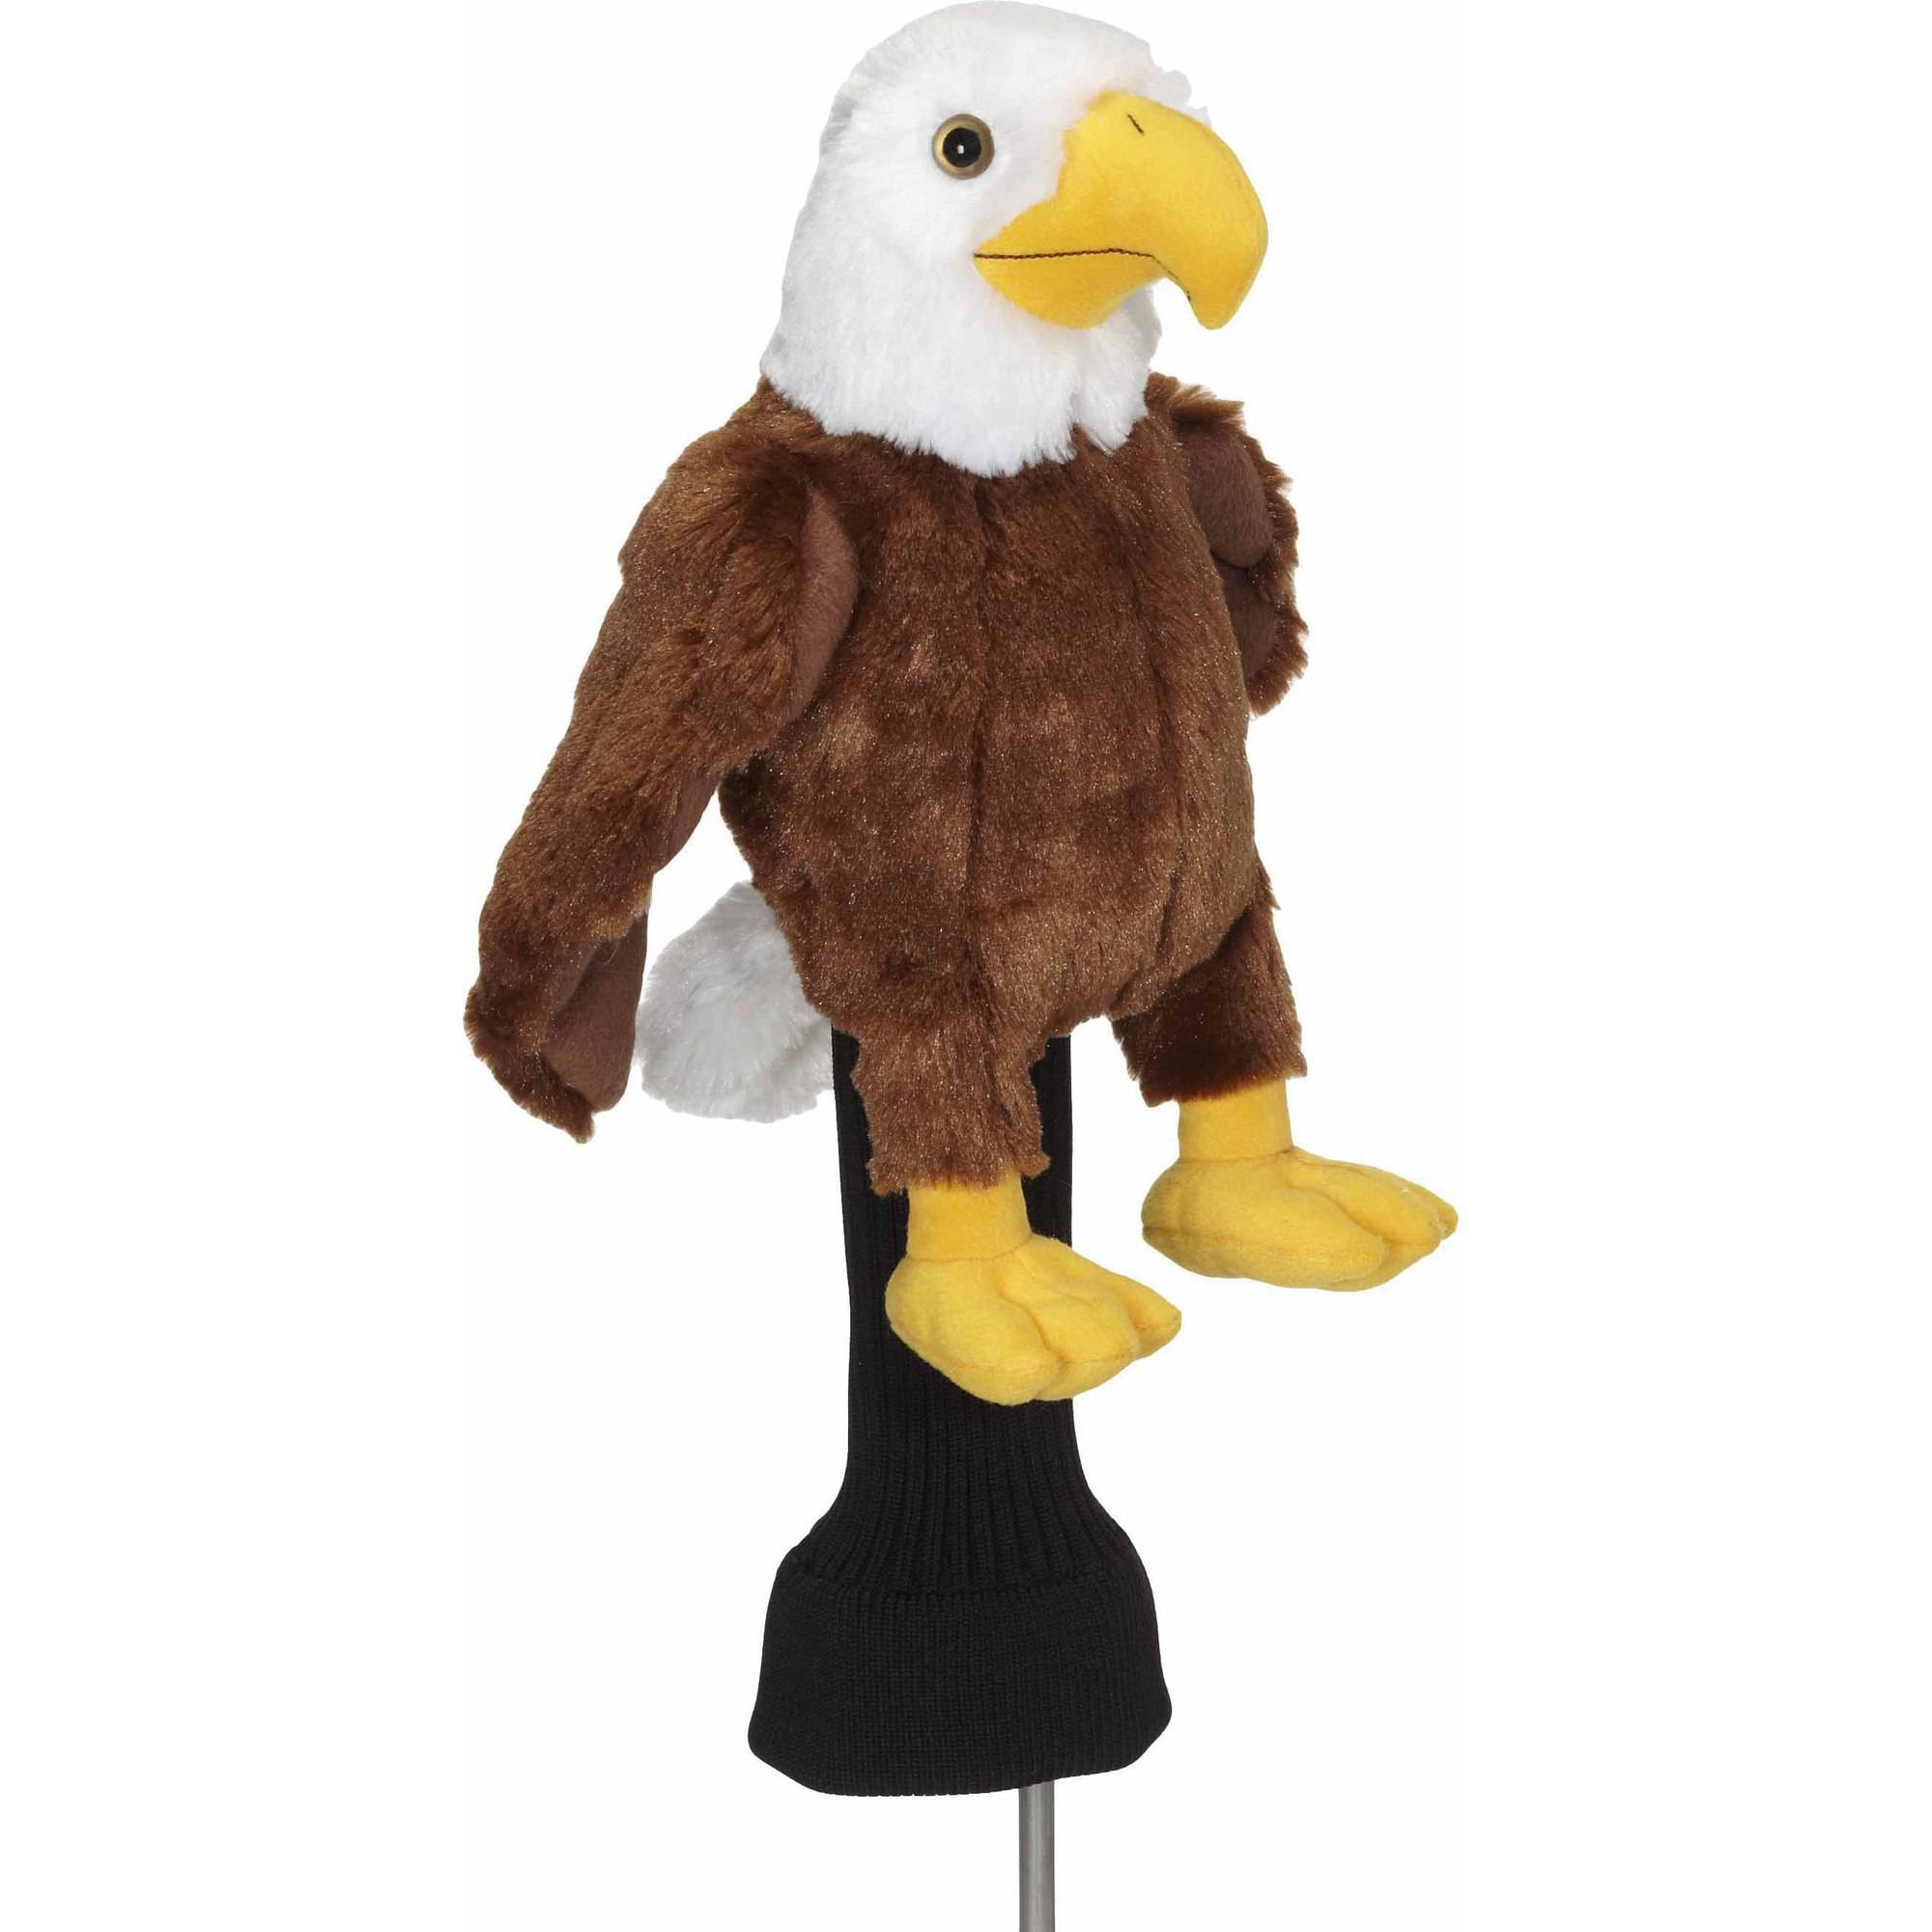 Creative Covers For Golf Bald Eagle Driver Headcover by Creative Covers